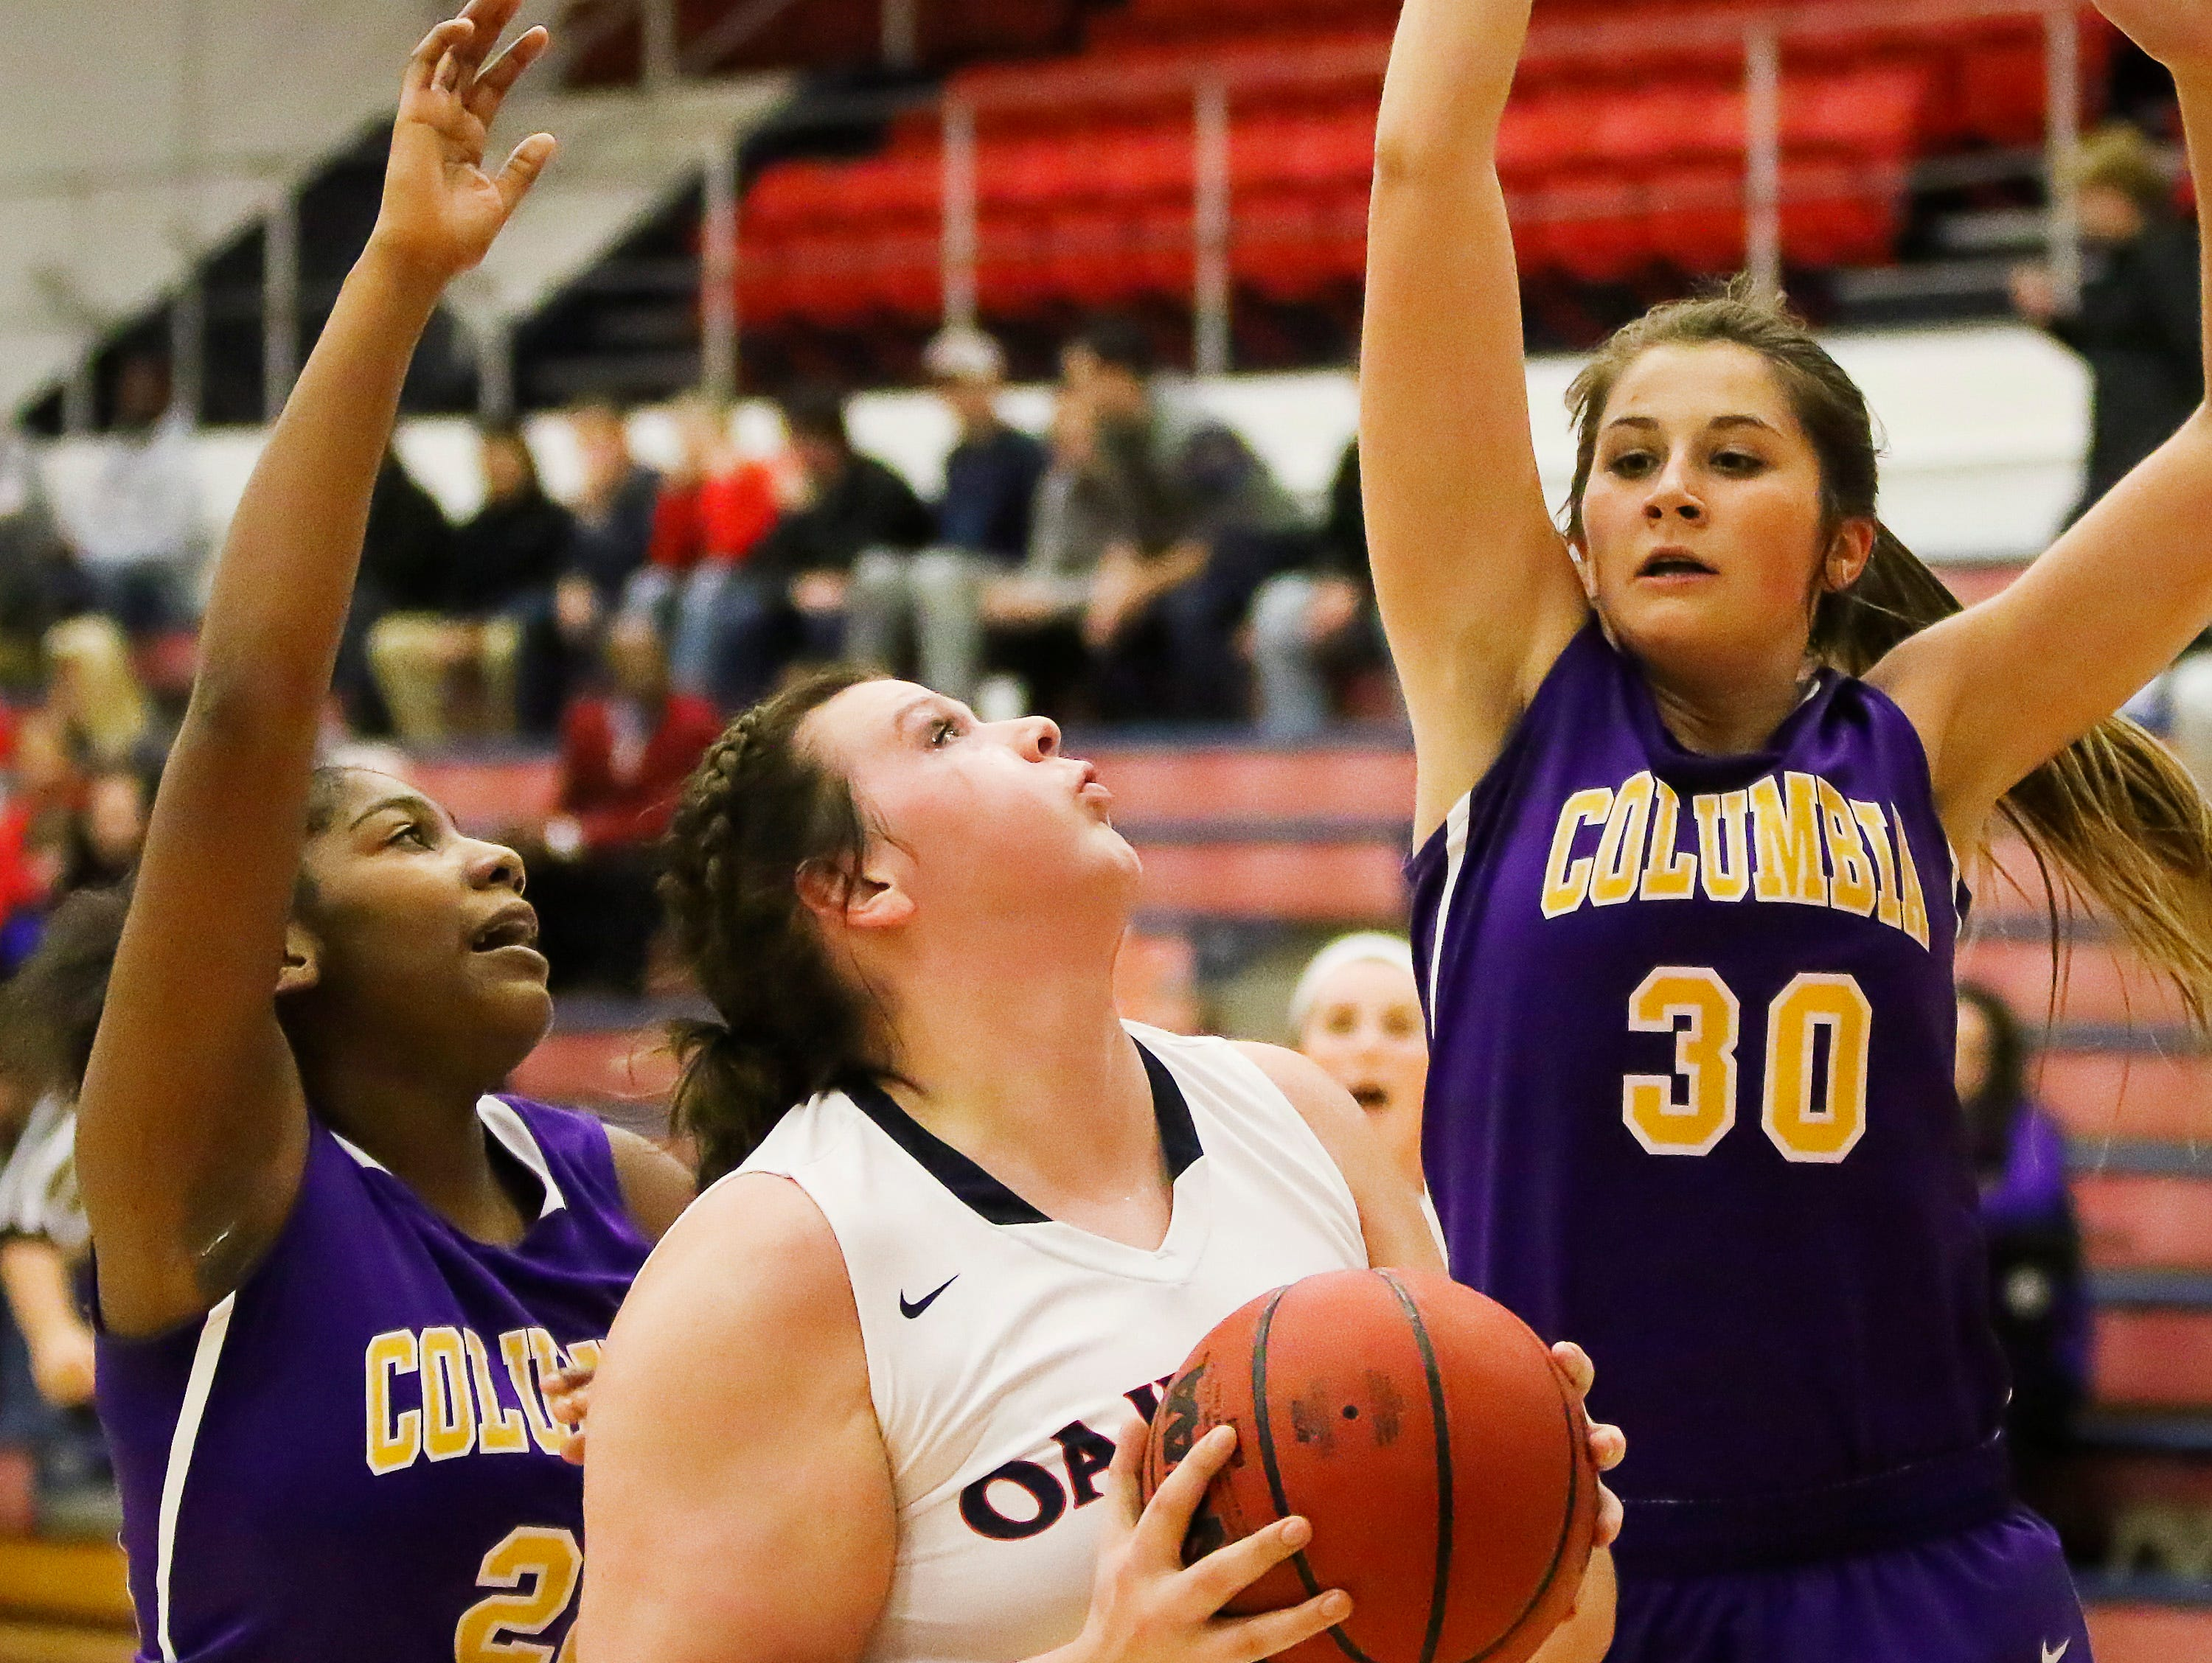 Oakland's Shelby Gibson prepares to go up for a shot over Columbia's Macy Gilliam during the Lady Patriots 79-11 win over the Lady Lions.